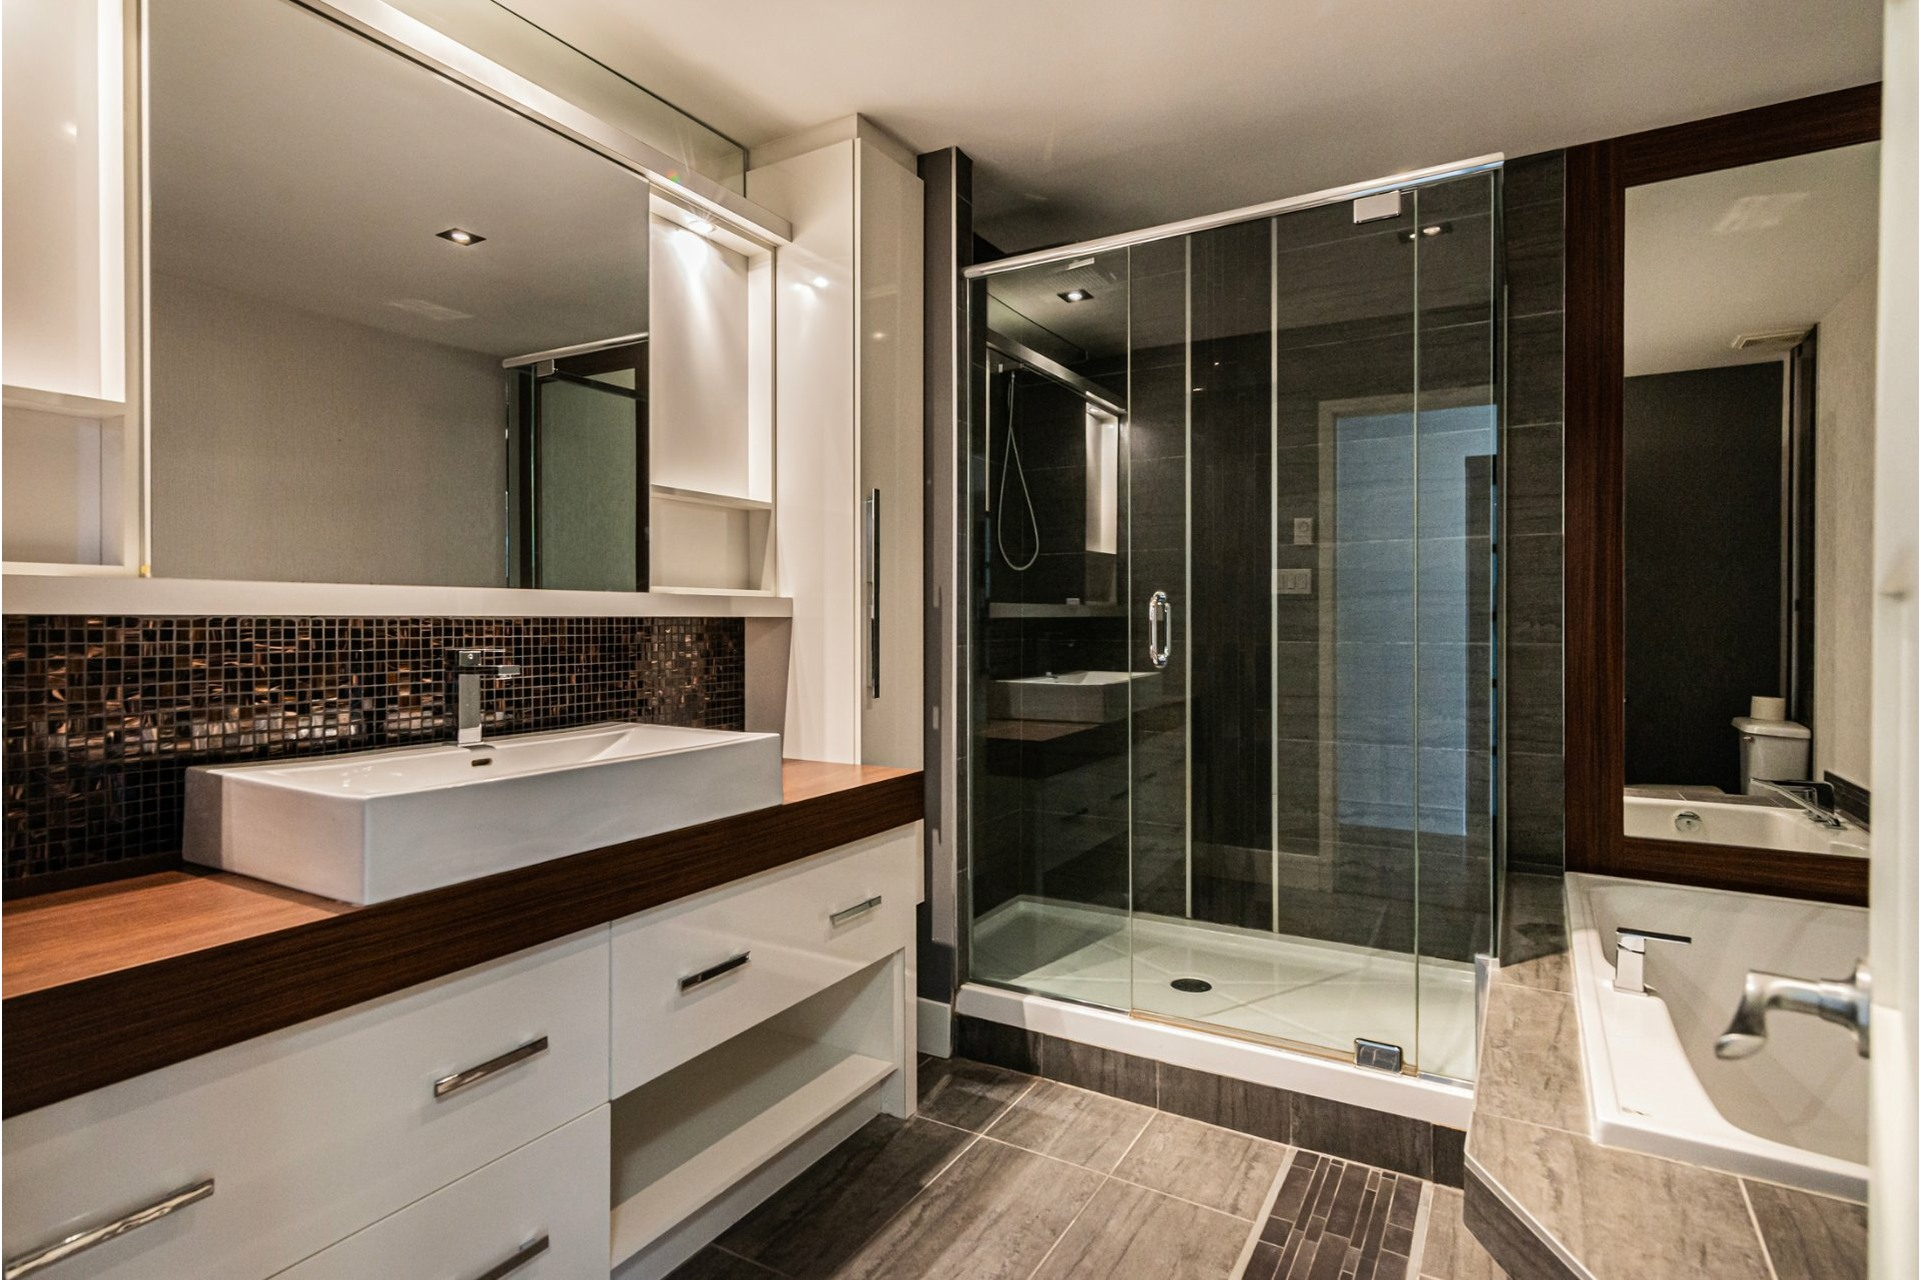 image 5 - Apartment For sale Brossard - 6 rooms